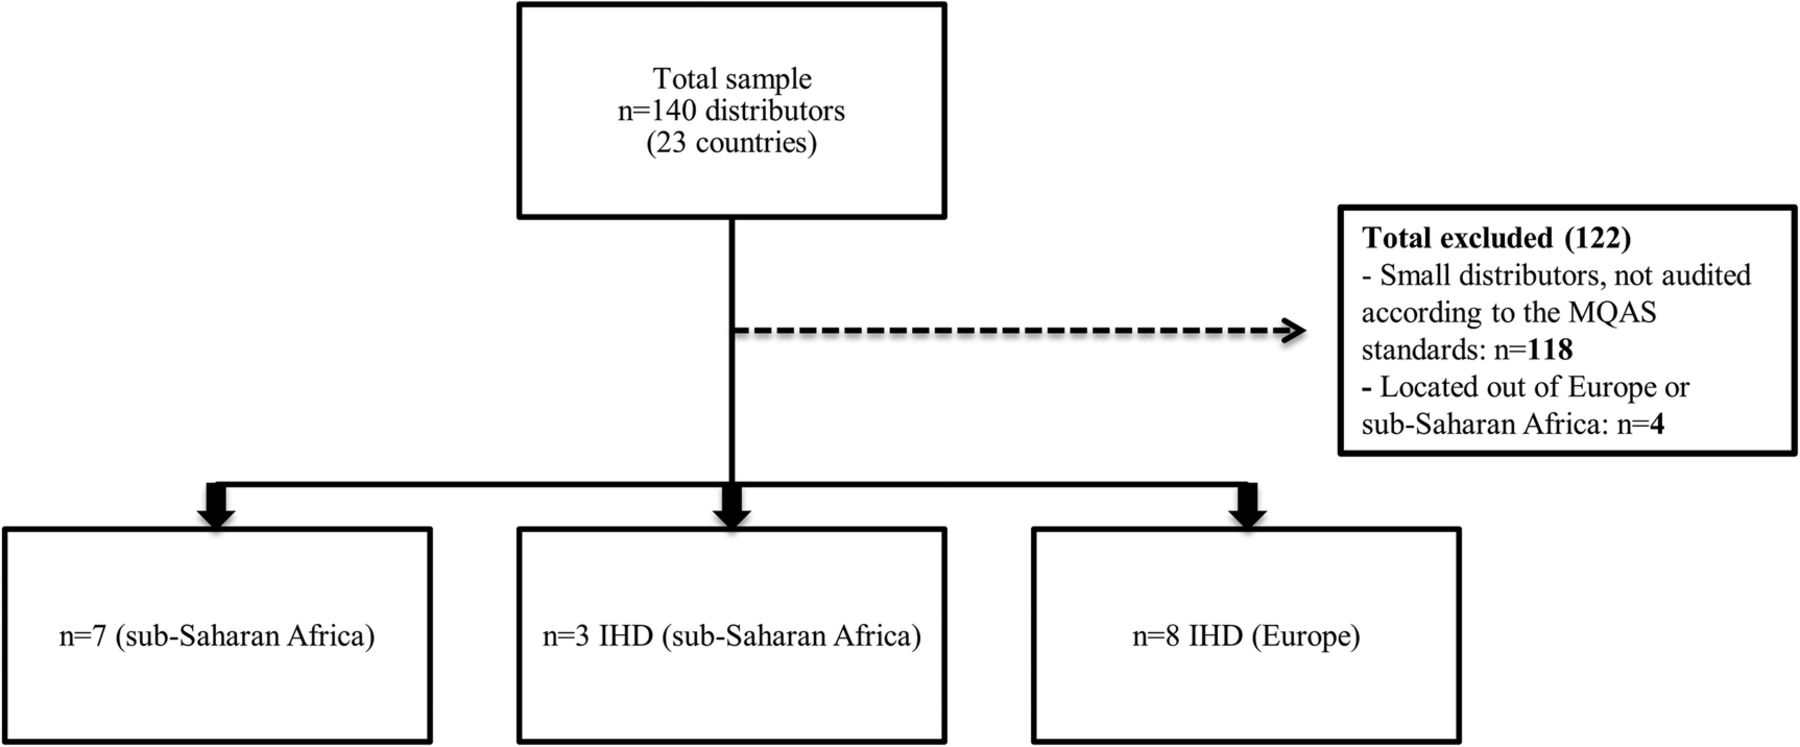 Quality assurance of medicines supplied to low-income and